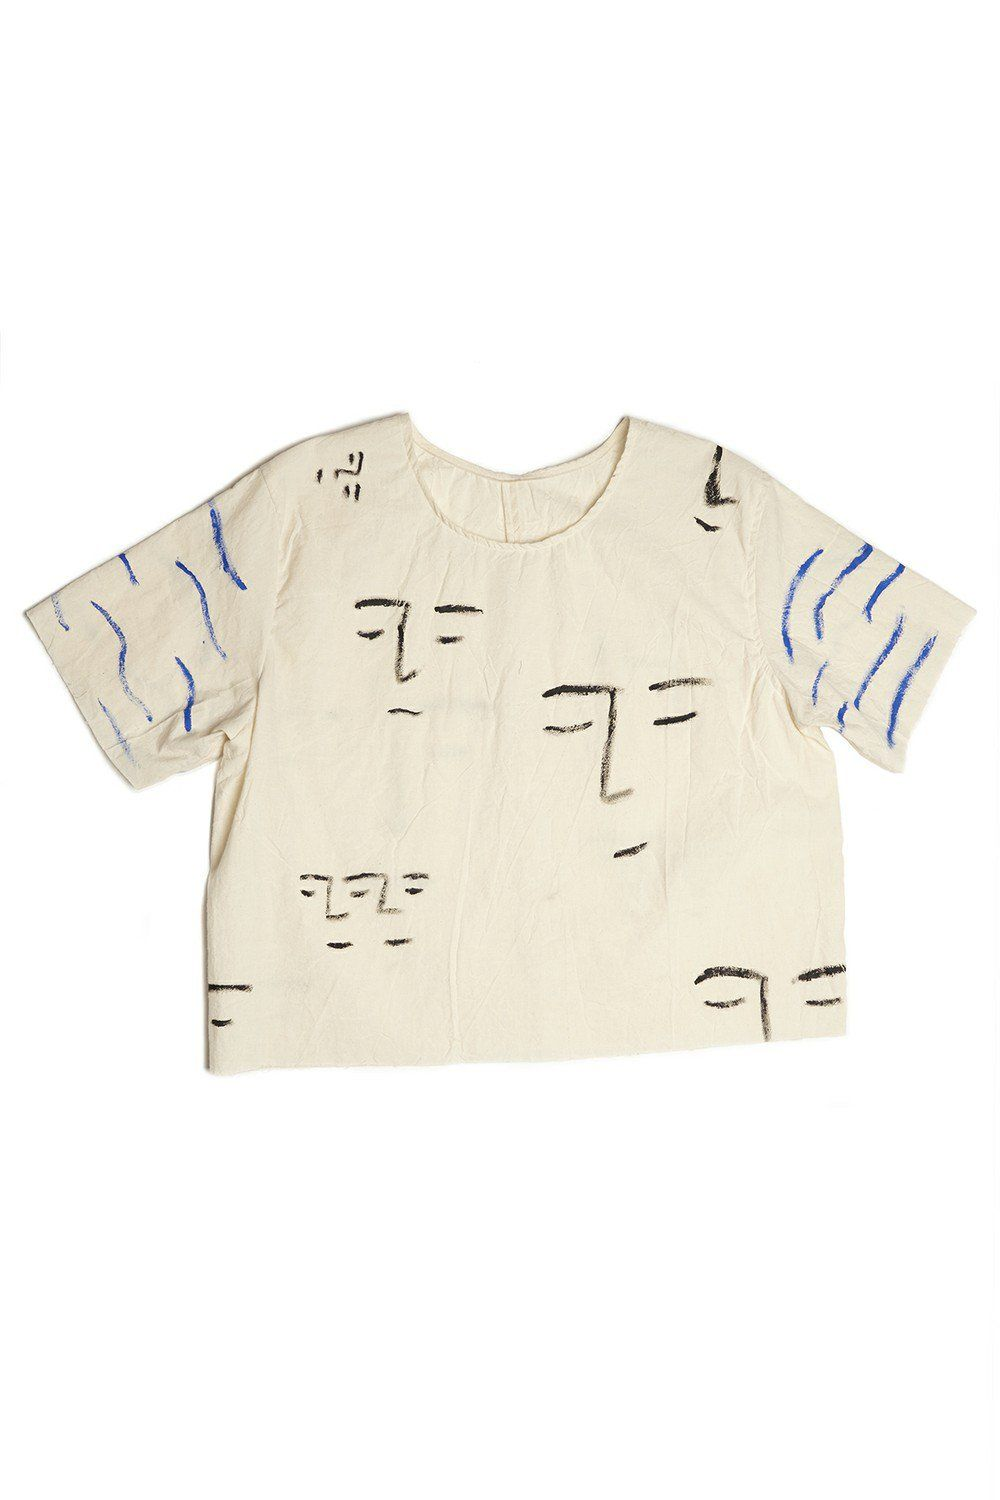 Waves and Faces Top via bfgfshop. Click on the image to see more!